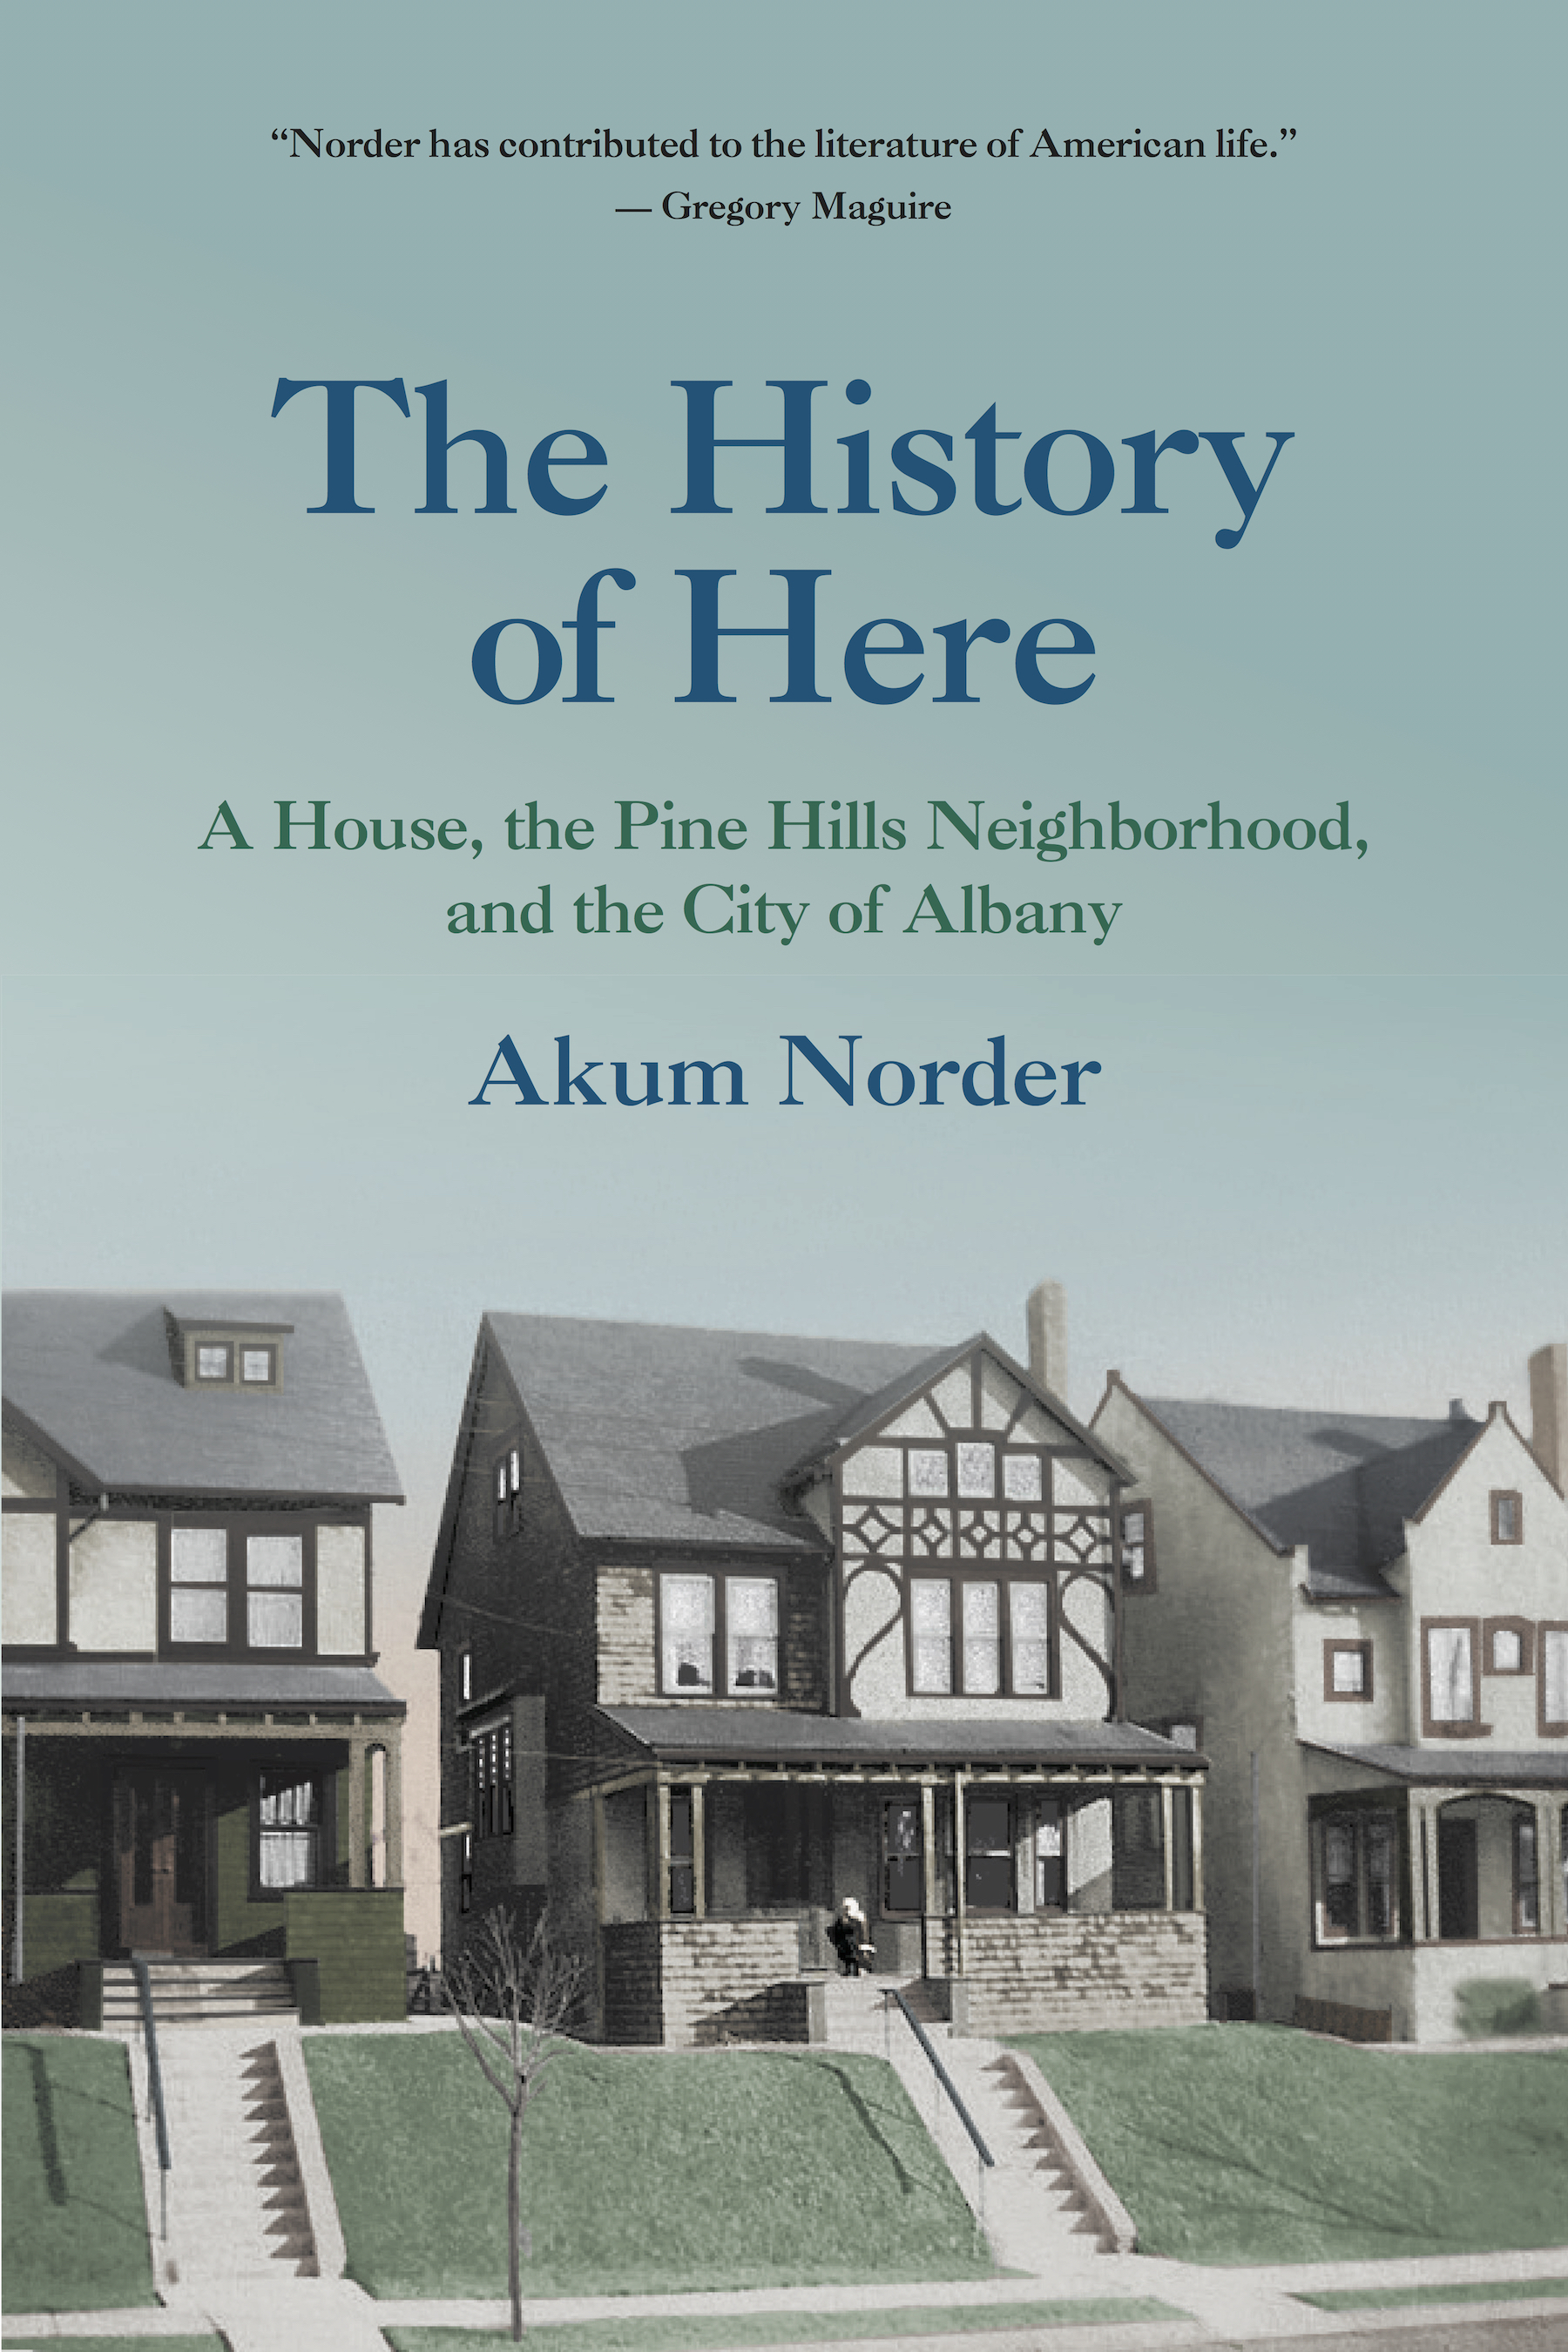 The History of Here by Akum Norder Book Release Celebration